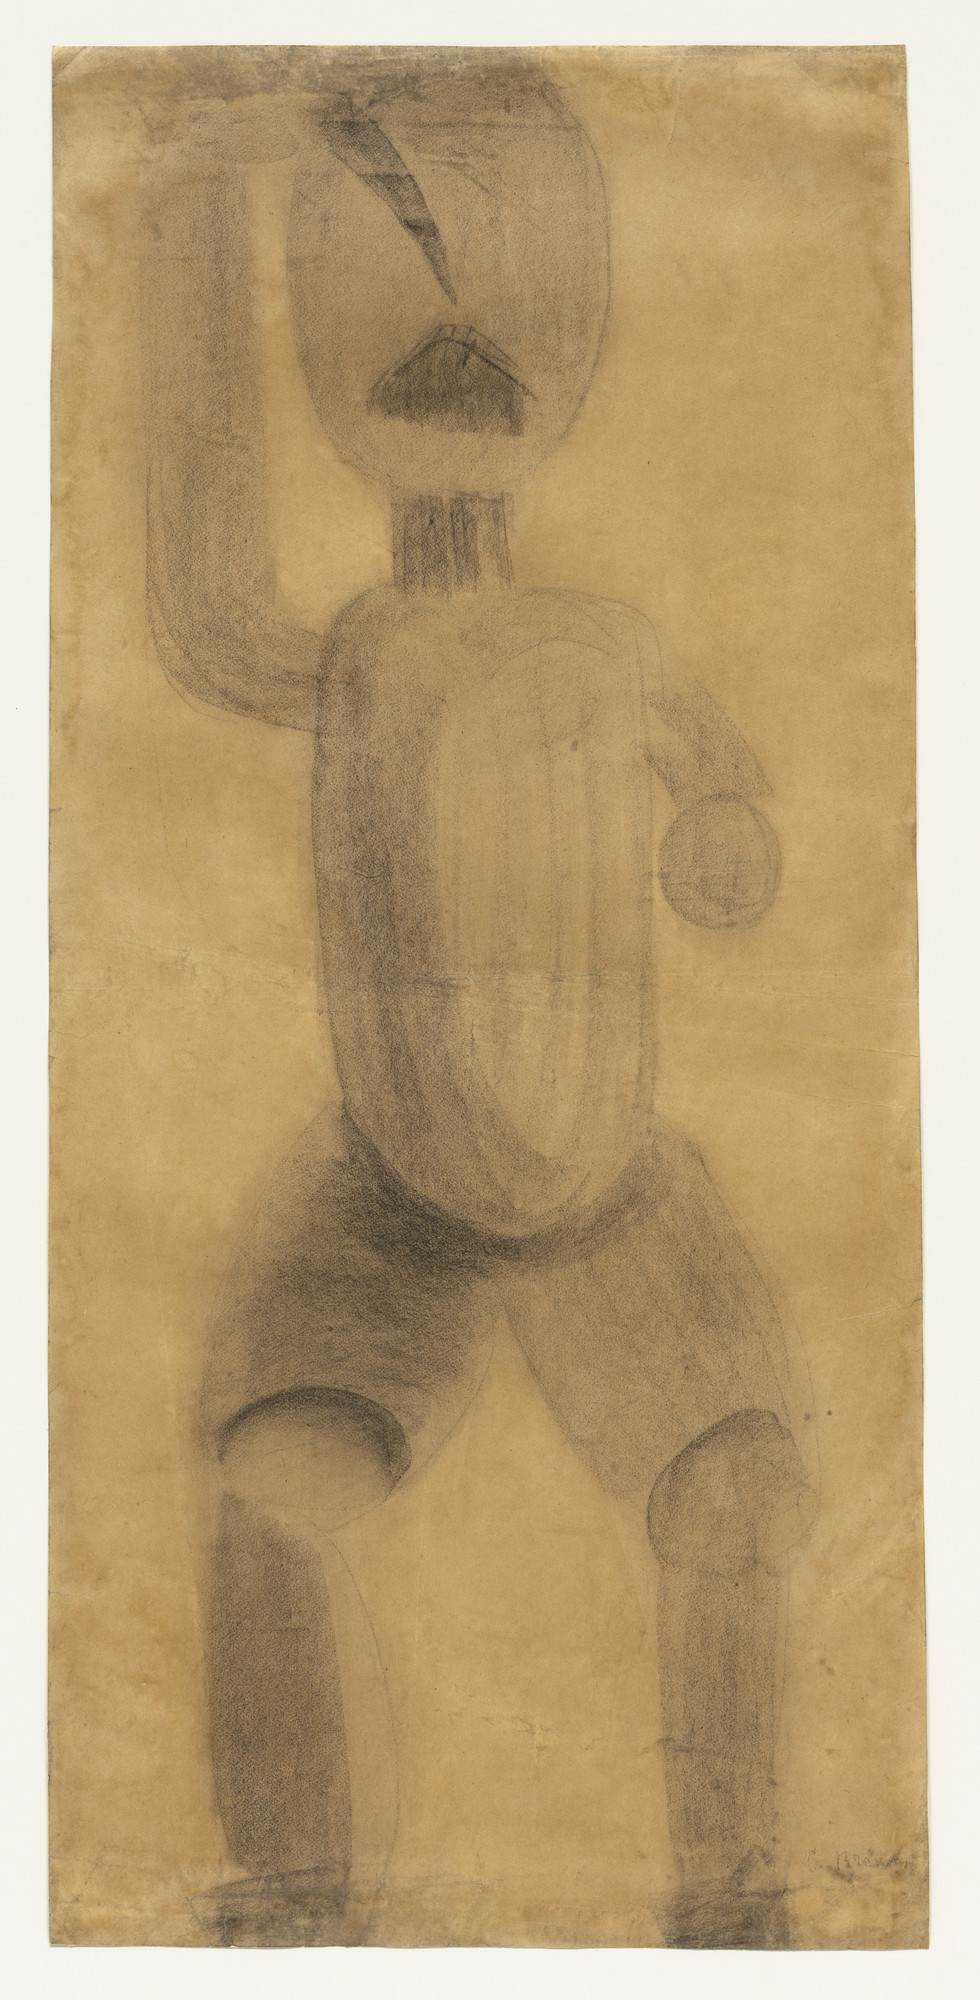 "Constantin Brancusi. Study related to ""The First Step"". 1913"